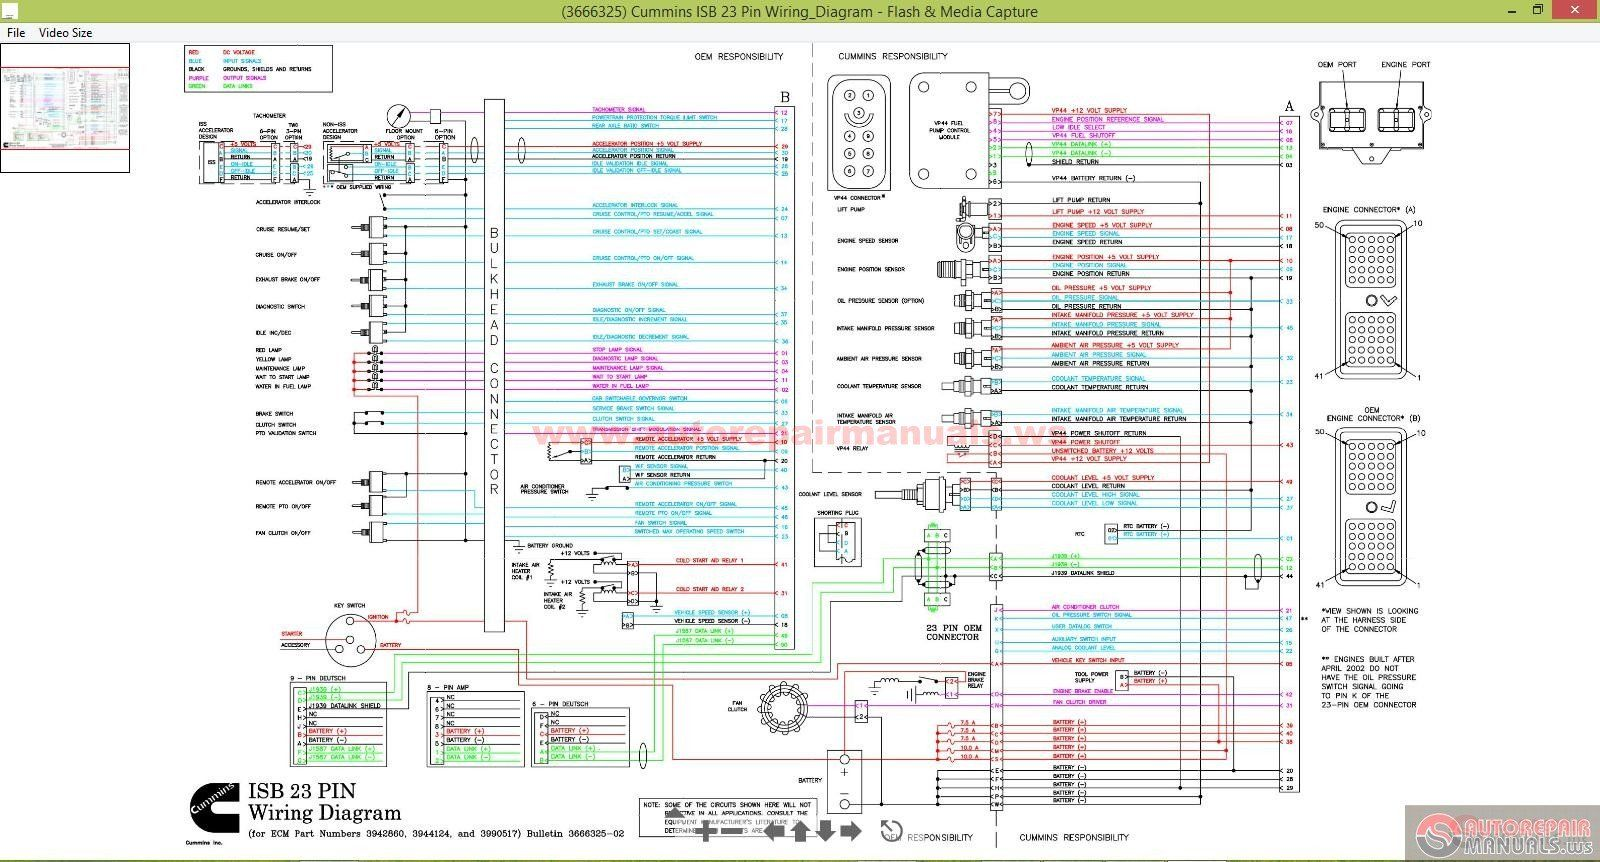 isx wiring diagram wiring diagram valisx wiring diagram wiring library cummins isx cm2350 wiring diagram cummins [ 1600 x 862 Pixel ]